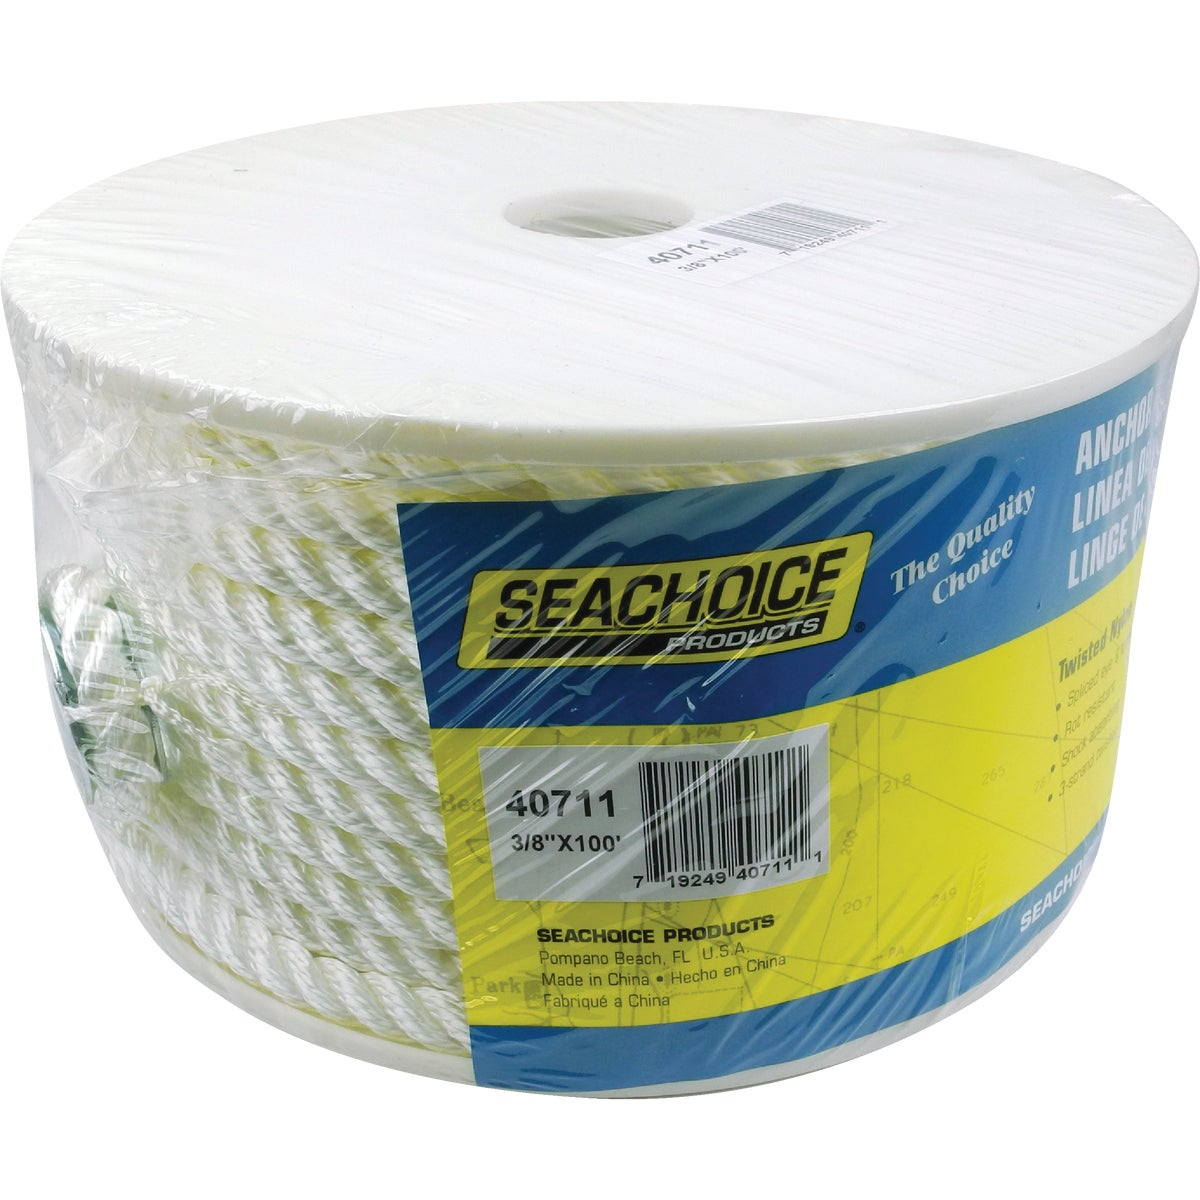 100' NYLON ANCHOR LINE